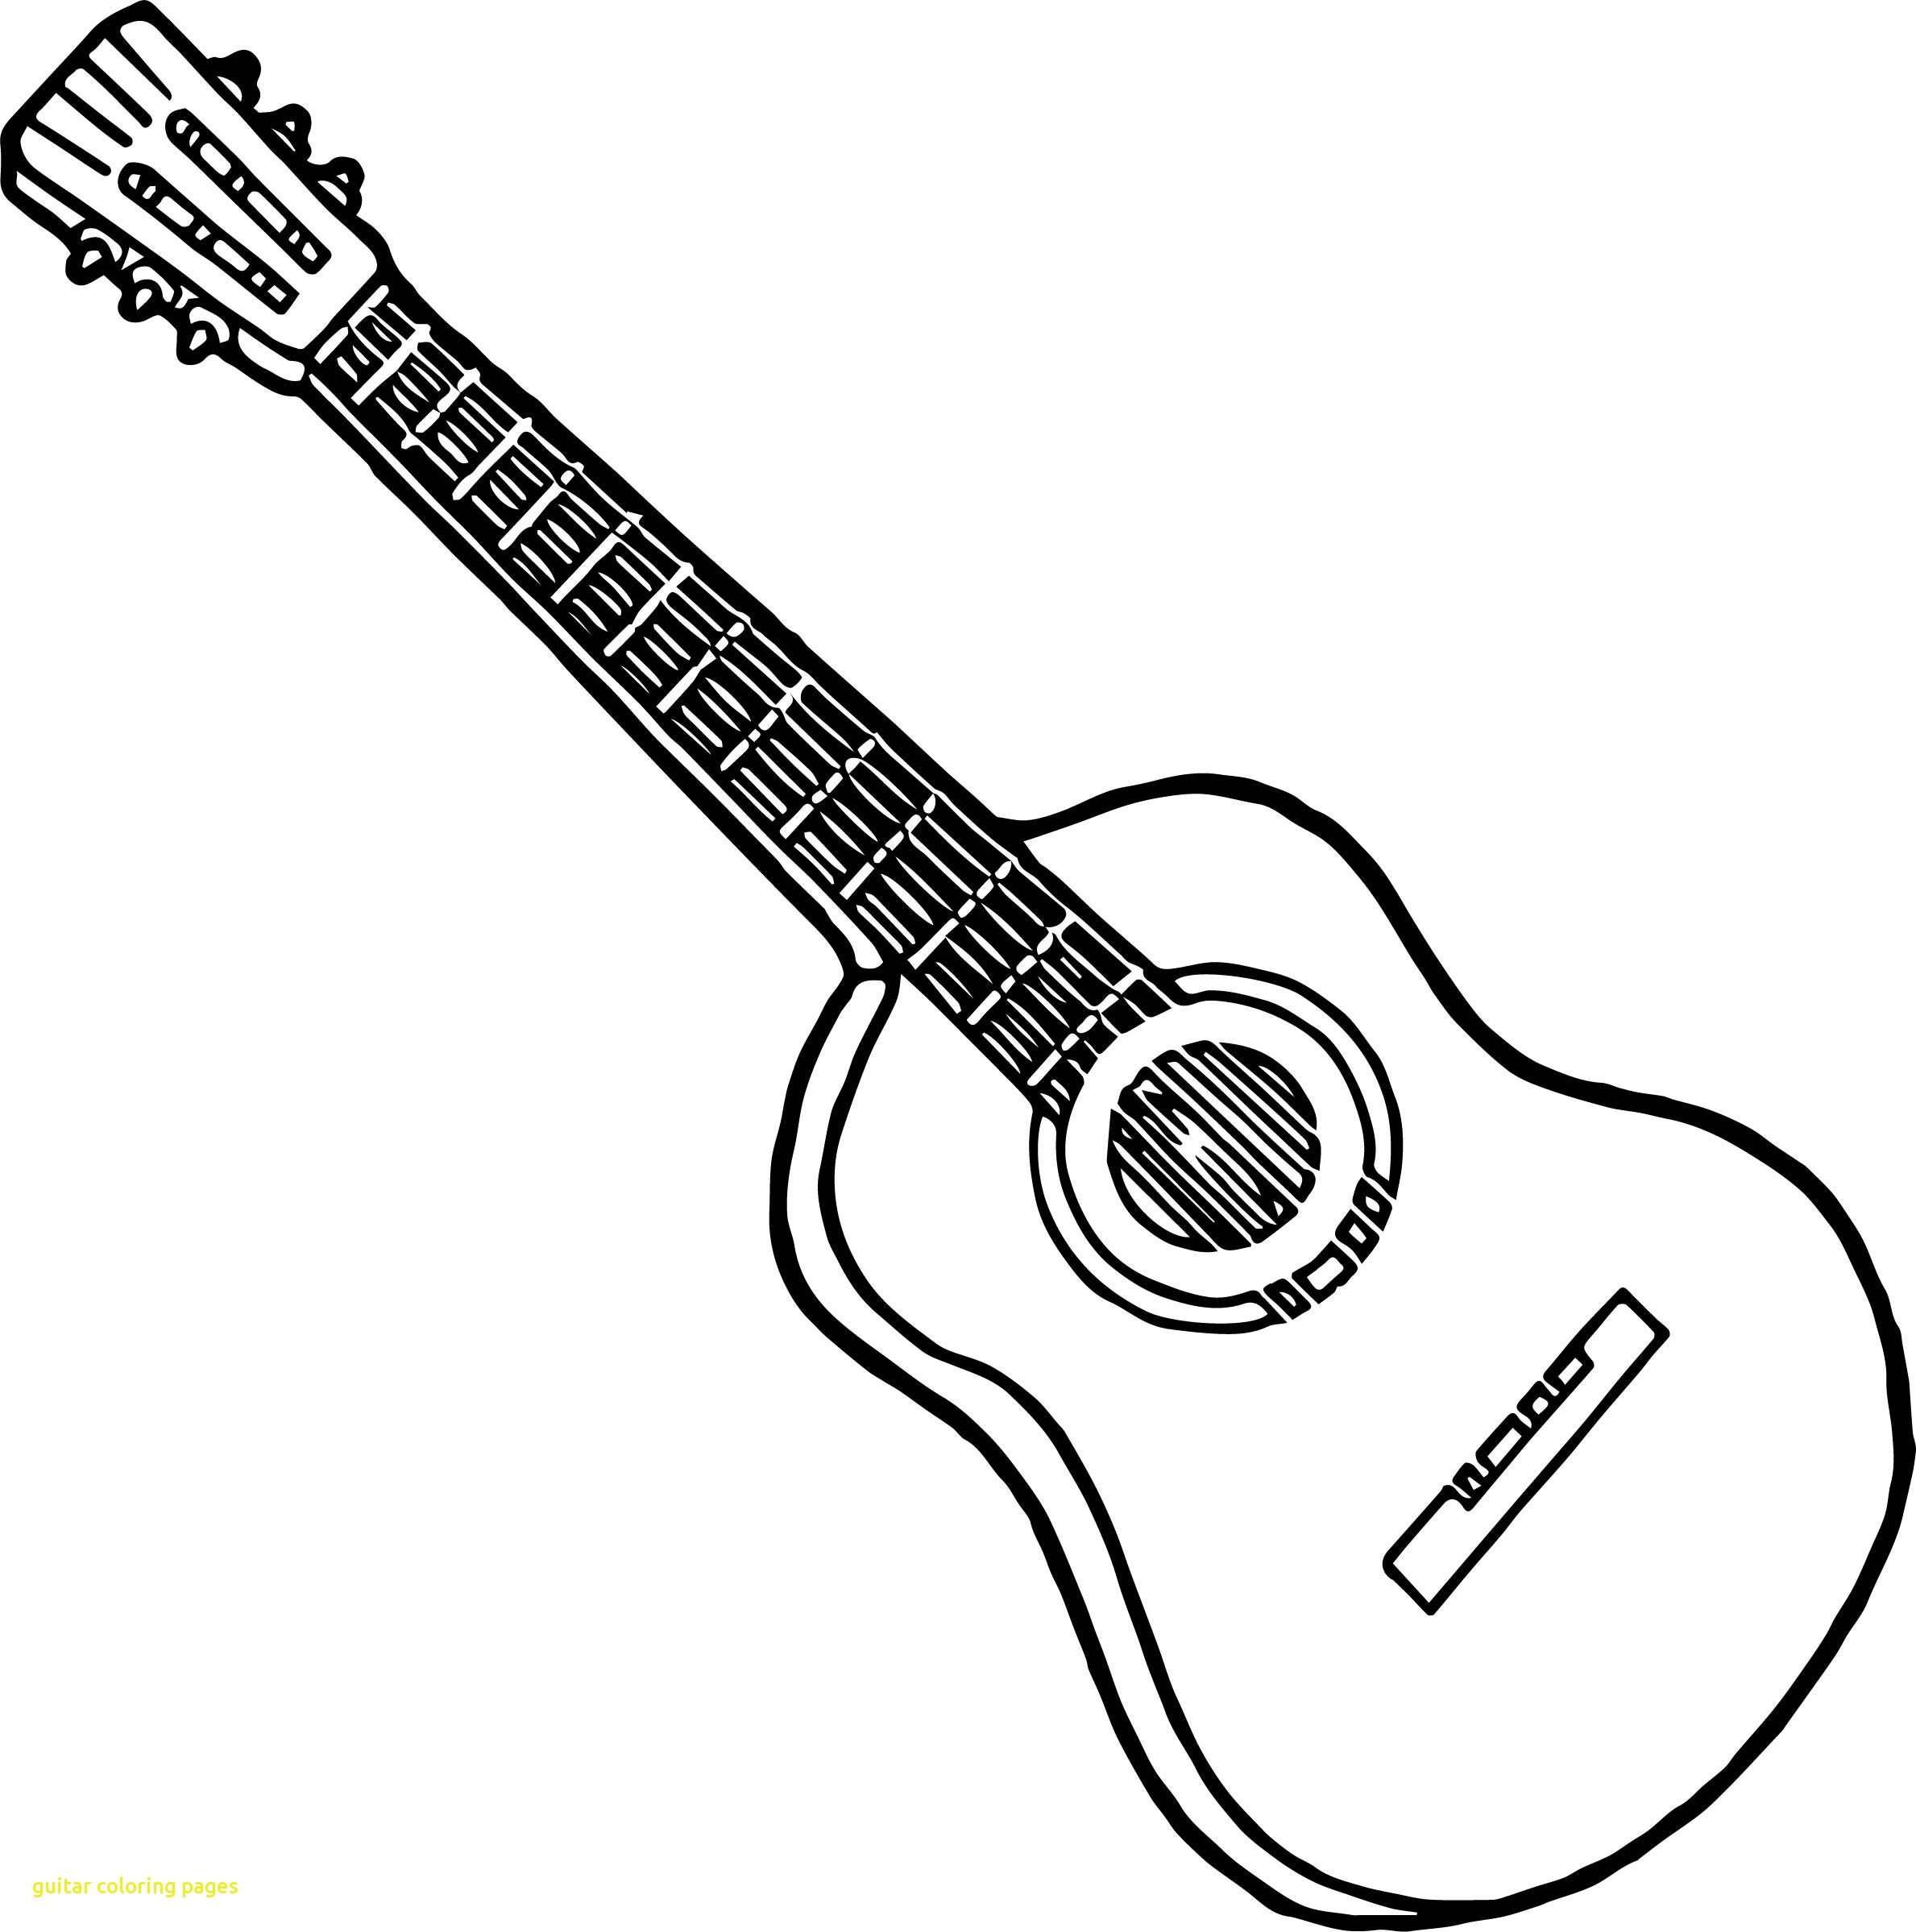 2378x2398 Guitar Coloring Pages With Strings Playing